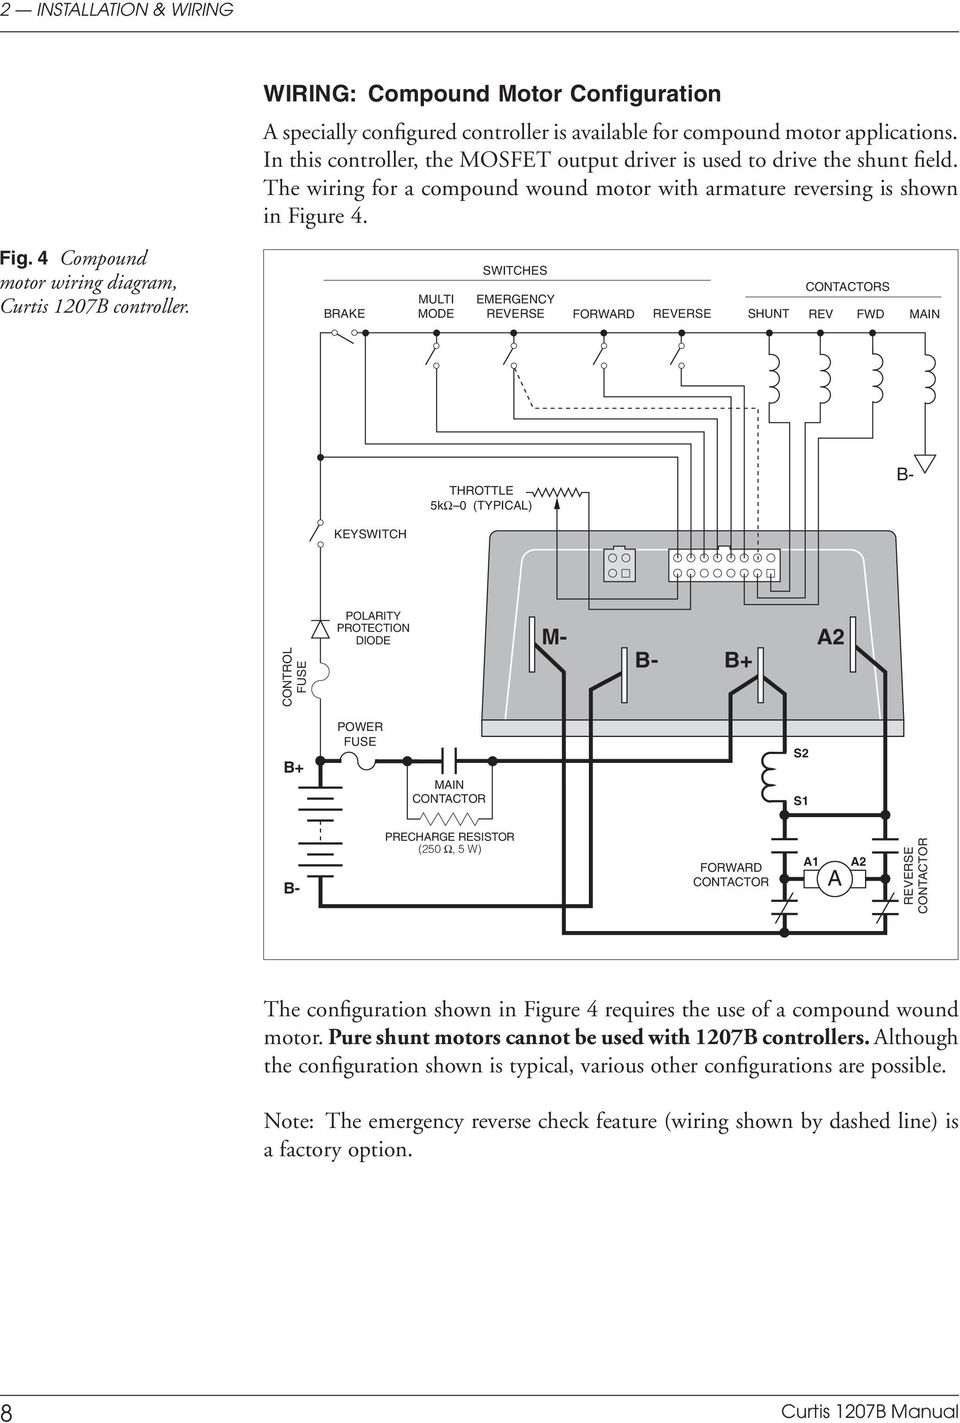 4 Compound motor wiring diagram, Curtis 1207B controller.